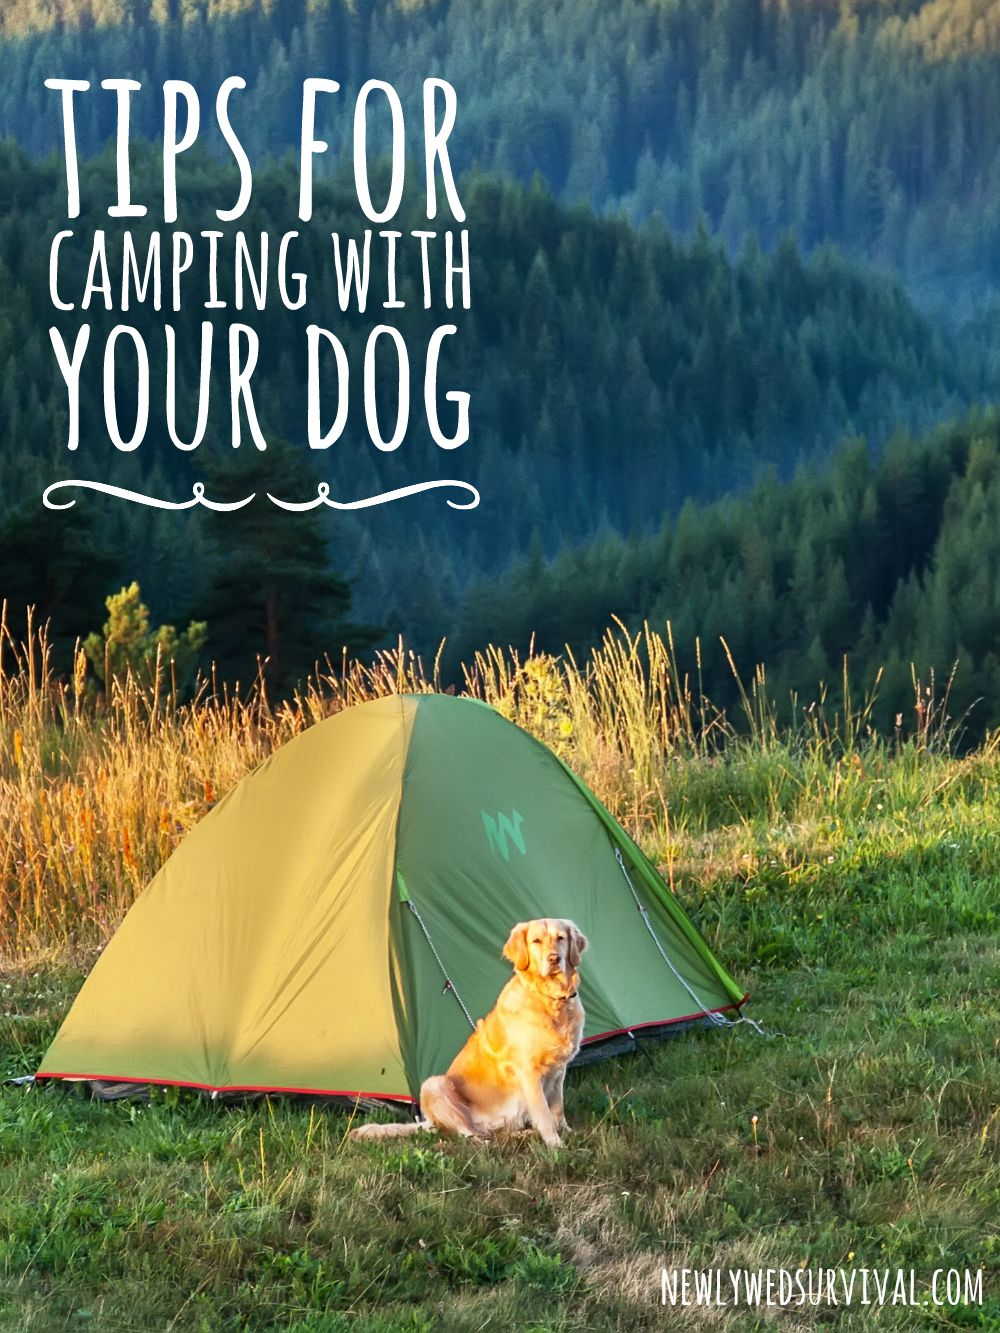 Tips for camping with your dog #PinnacleHealthyPets